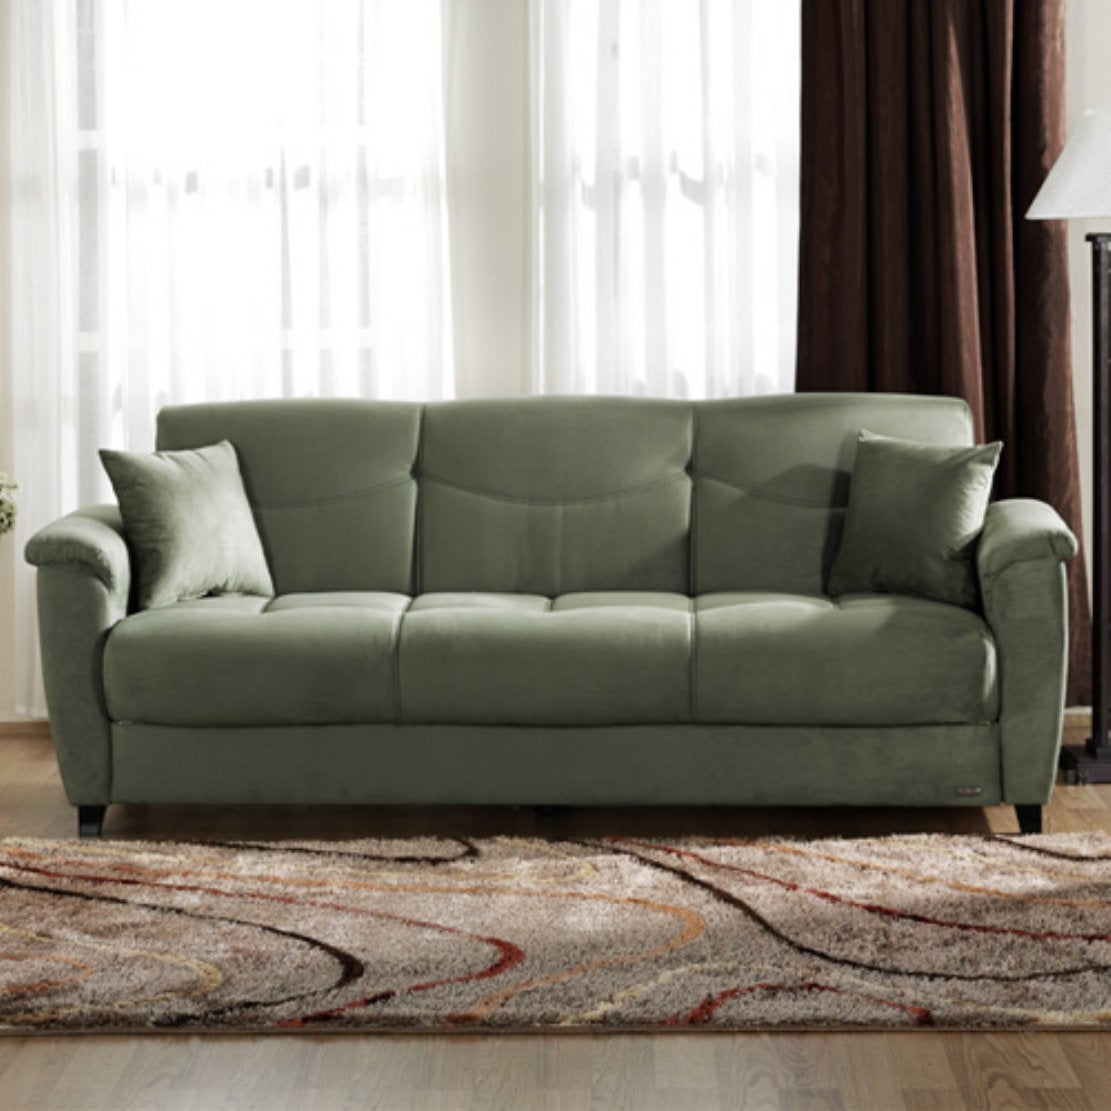 Cool Sage Green Microfiber Couch Sofa Bed Sleeper With Hidden Storage Pdpeps Interior Chair Design Pdpepsorg